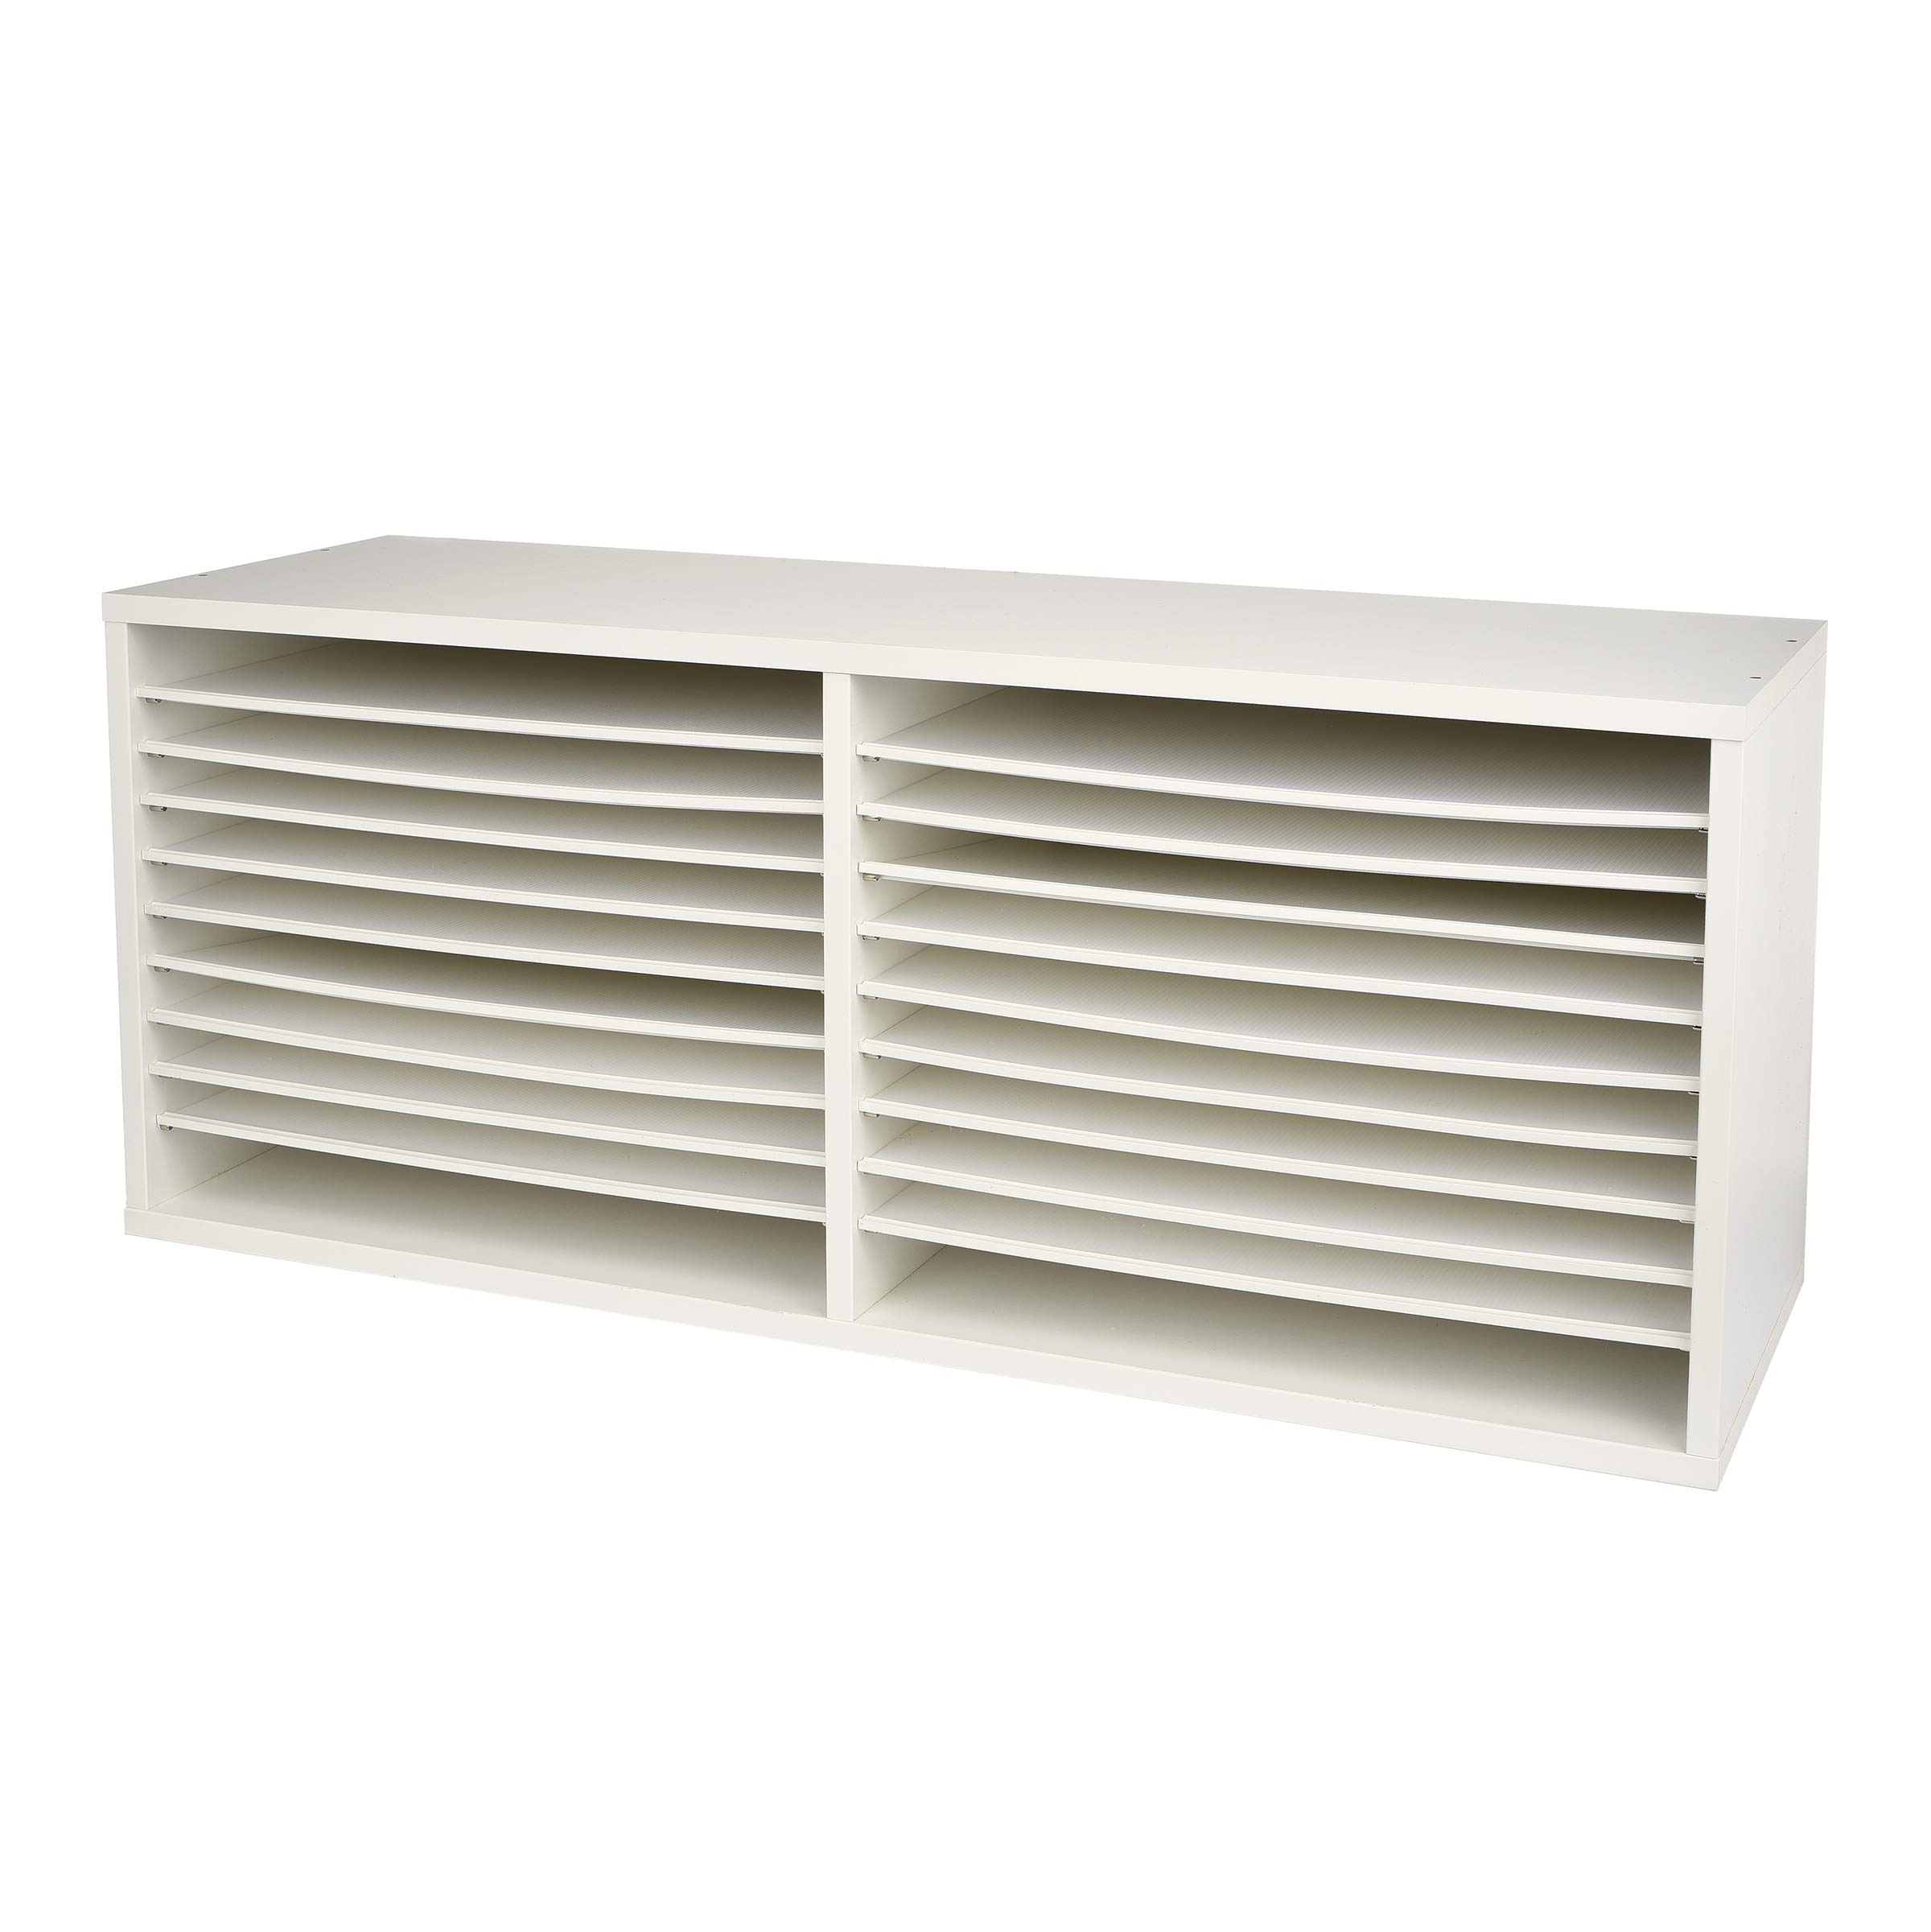 AdirOffice Extra-Wide Wooden Construction Paper Organizer - Durable Literature Storage w/Adjustable Compartment Shelves for Home Office & Classroom Papers (White)